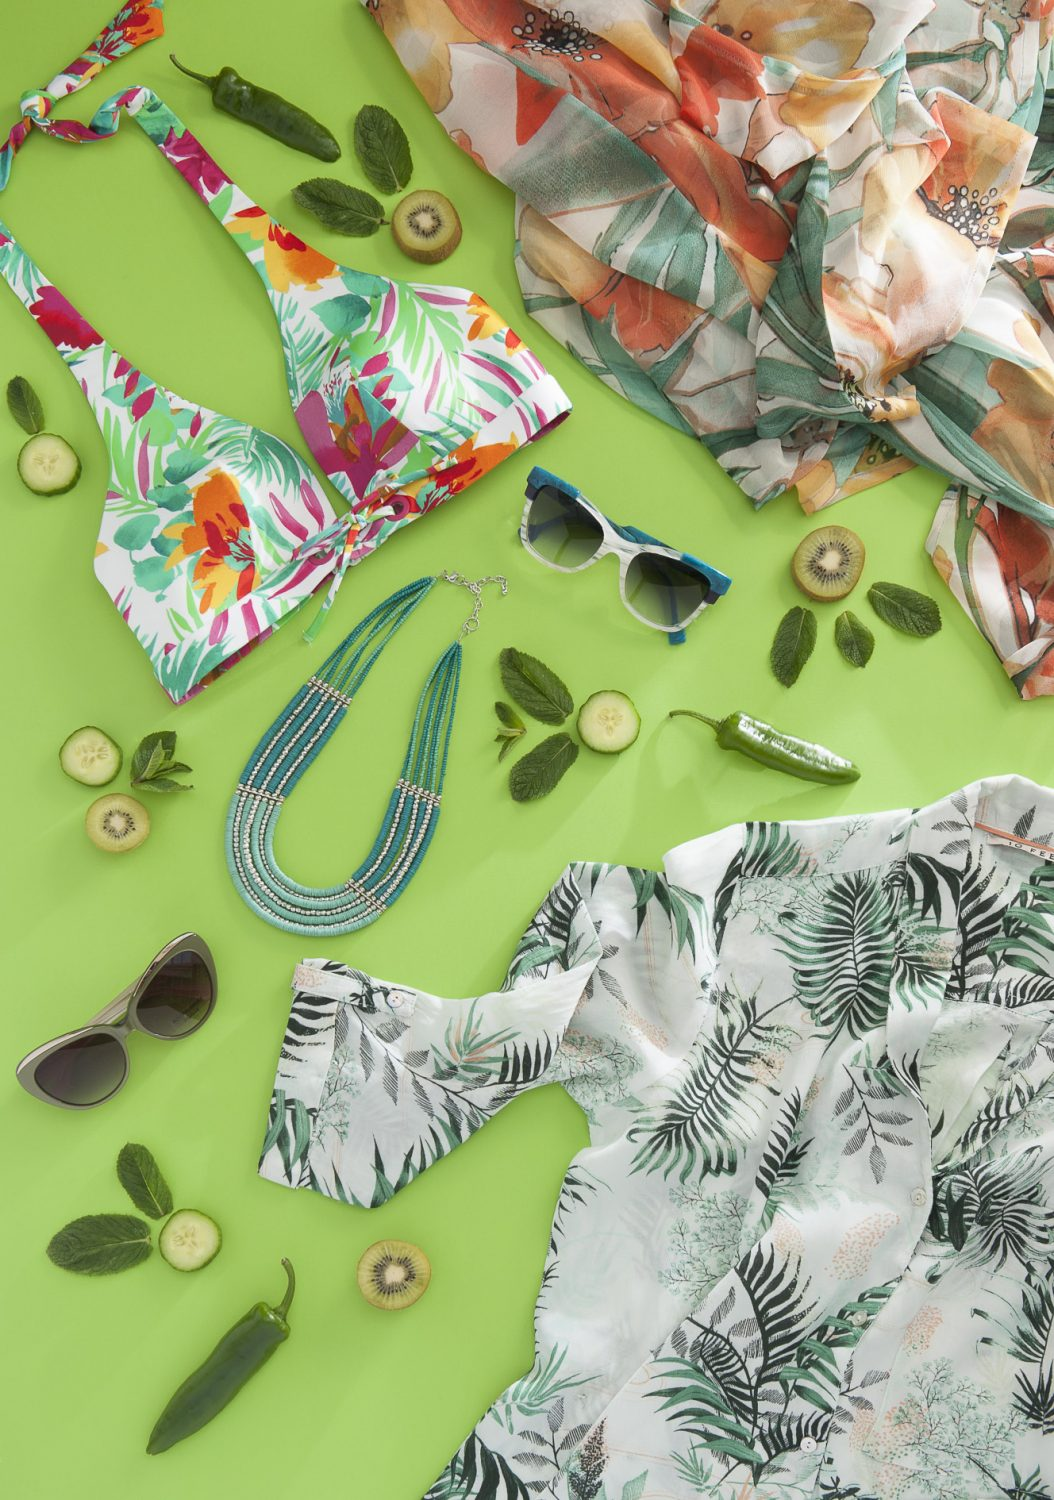 Huit bikini, £45, Lovell & Vie, Sevenoaks 01732 454445 www.lovellandvie.co.uk; Vacanze Italiane poncho, £49, Siren & Pearl, Rye 01797 224116 www.sirenandpearl.co.uk; turquoise bead necklace, £20, Spice, Cranbrook 01580 714156 www.spicecranbrook.co.uk; 10feet print blouse, £87, Odyl, Cranbrook 01580 714907 www.odyldesign.com; Res Rei glasses £225, Booth & Bruce glasses, £150, Linda Pope Opticians, Hawkhurst 01580 753744 www.lindapopeoptician.co.uk